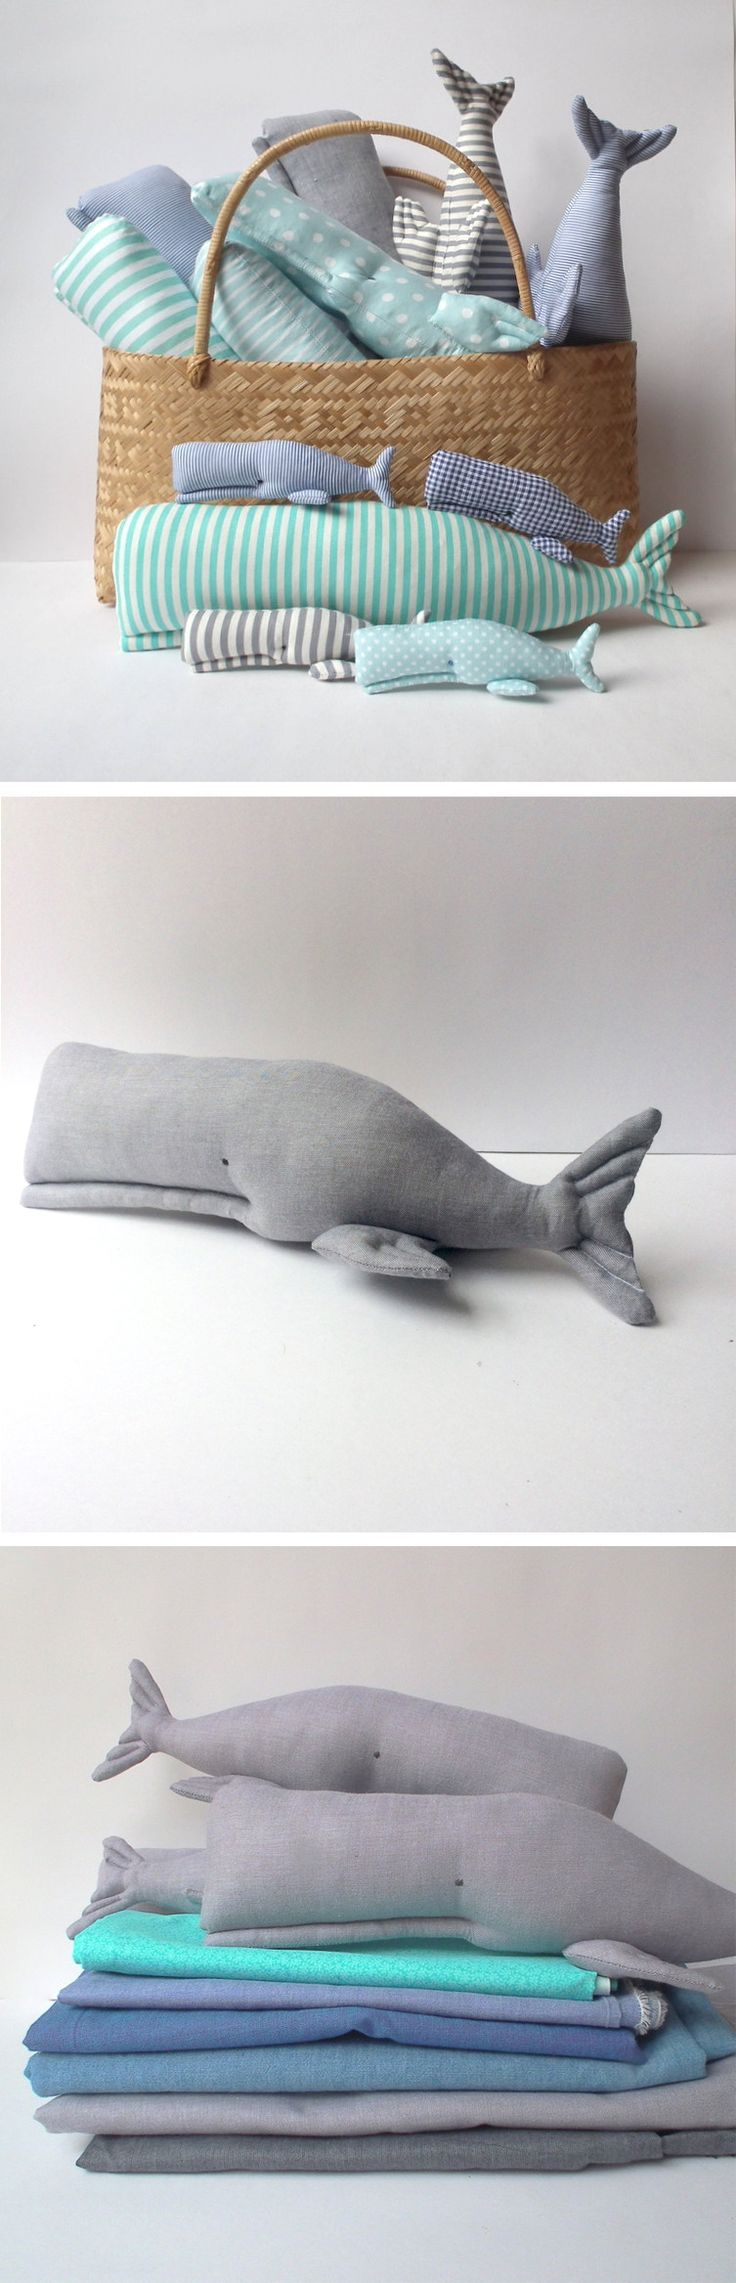 Nautical Nursery Whale toy, stuffed whale, grey textile. Child friendly softie for a play room . Nice gift for baby shower, any gender